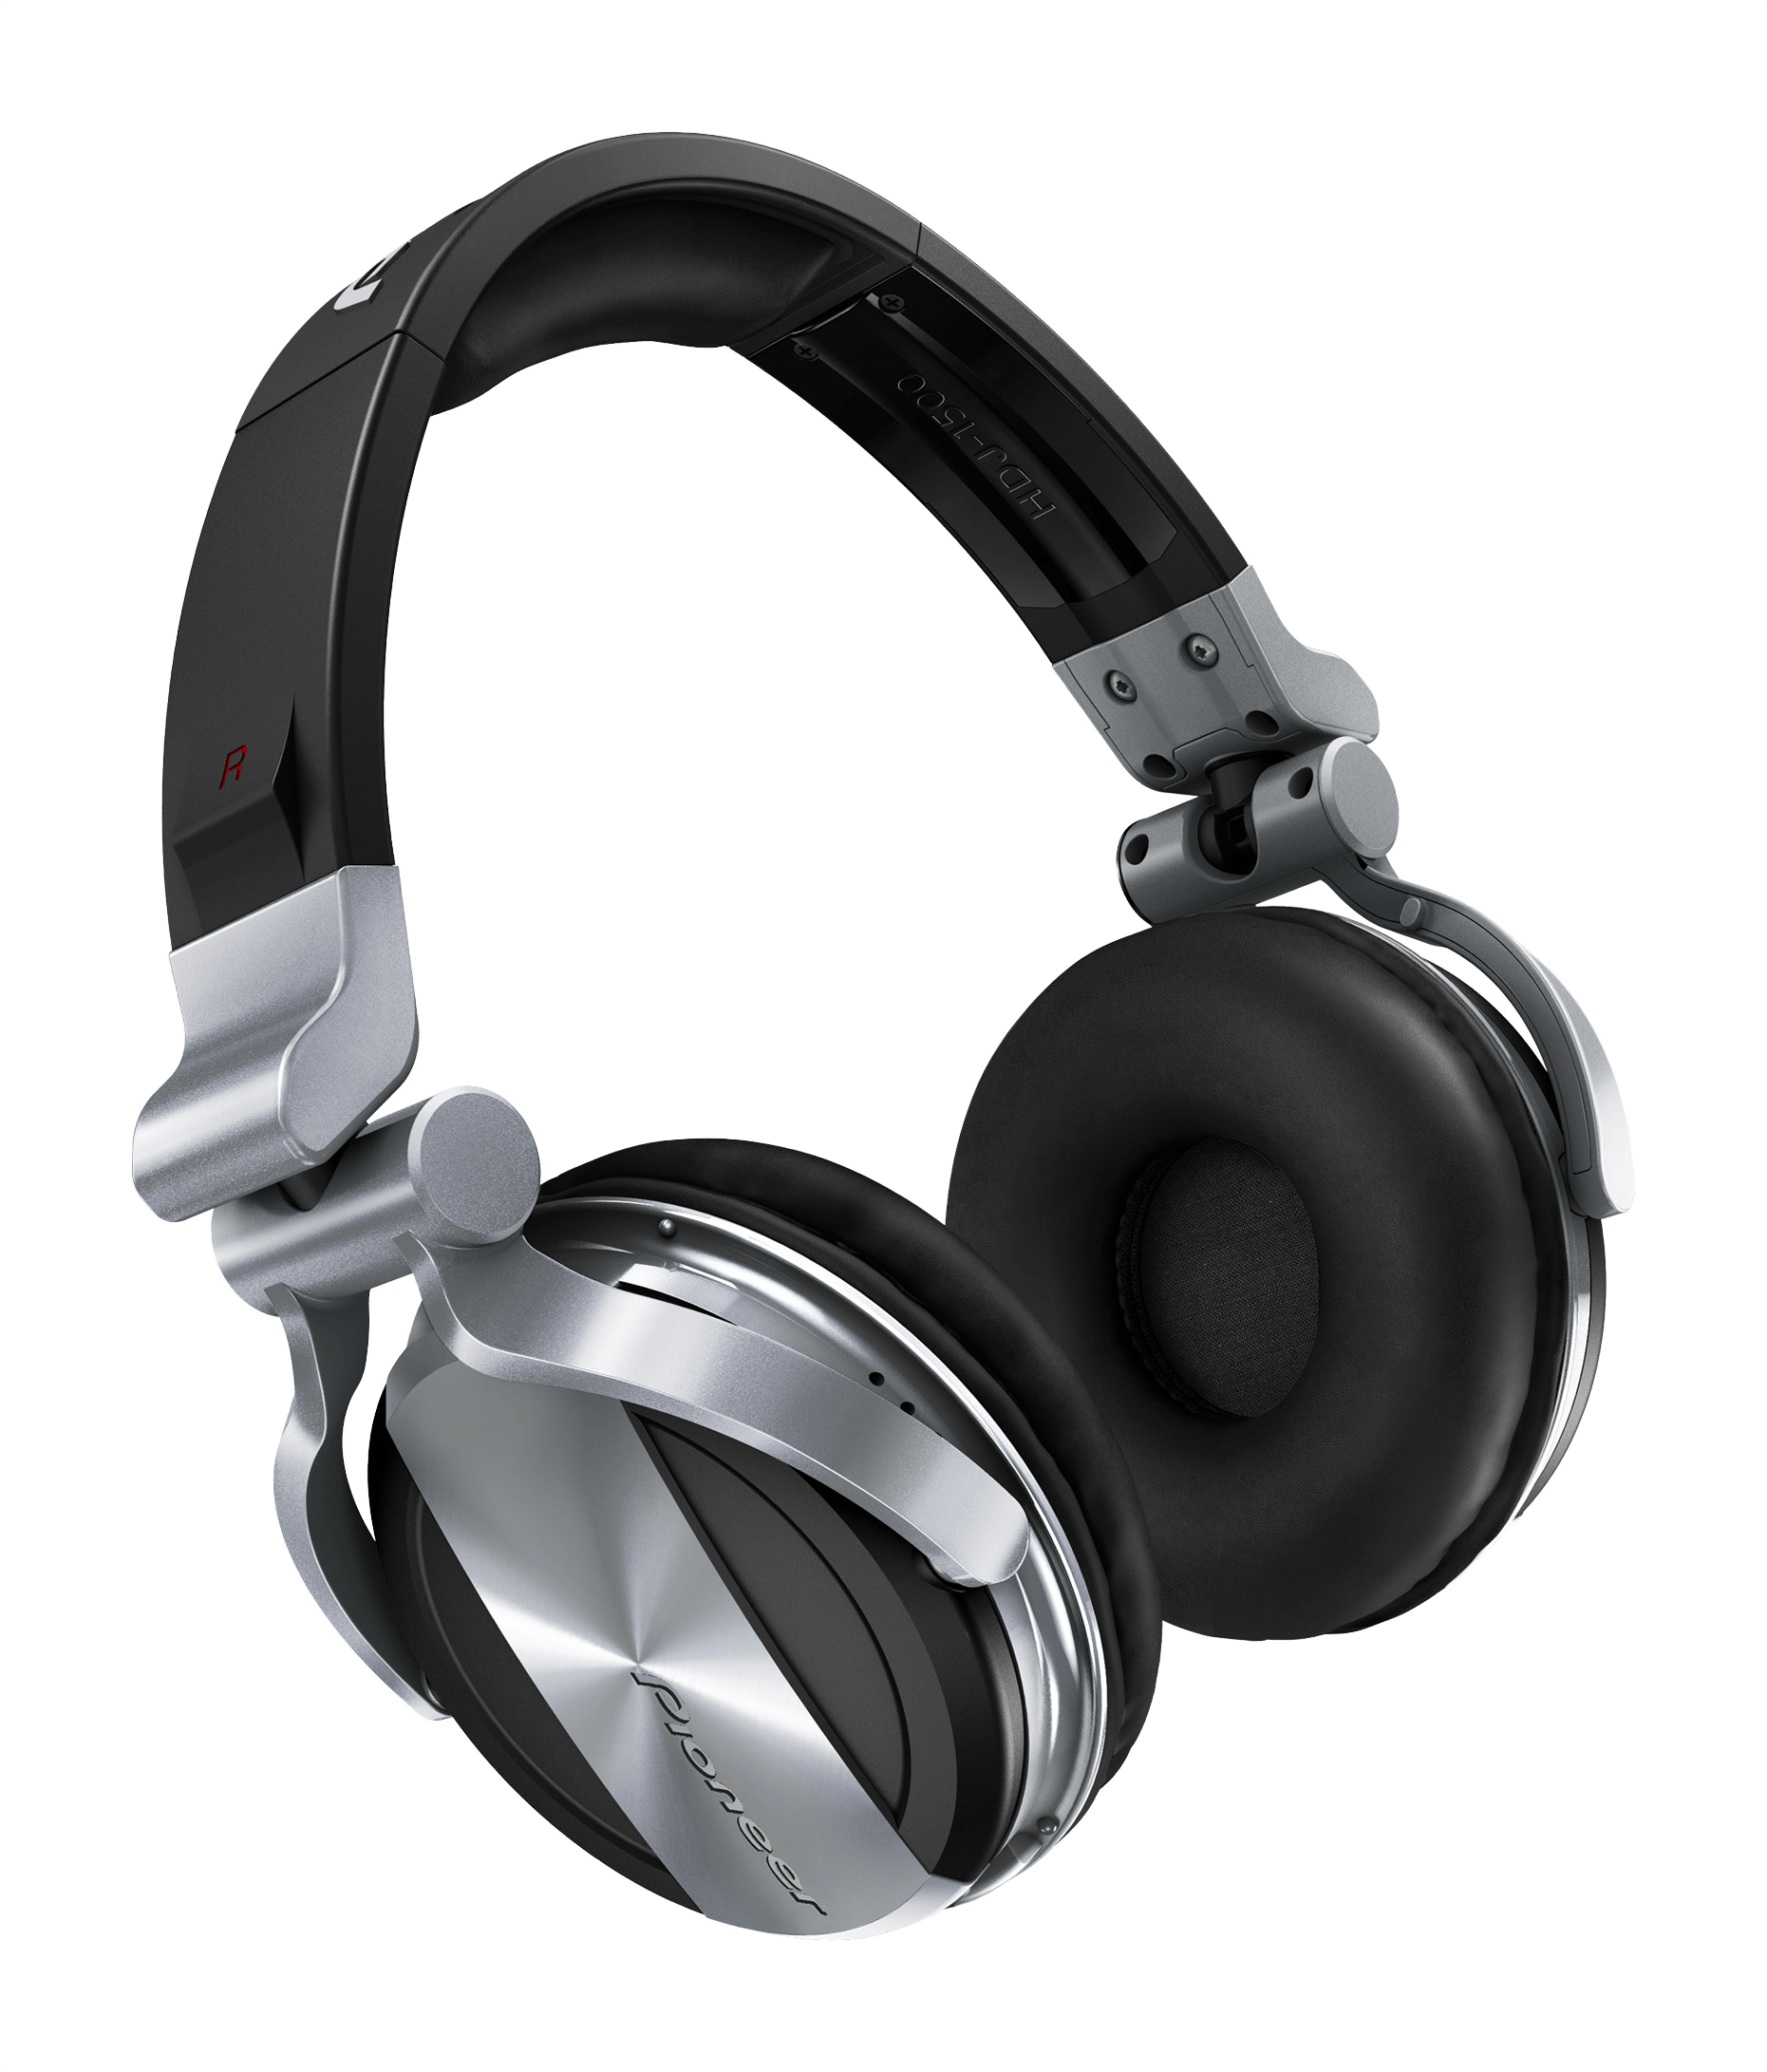 Headphones clipart tumblr transparent. Png stickpng pioneer silver